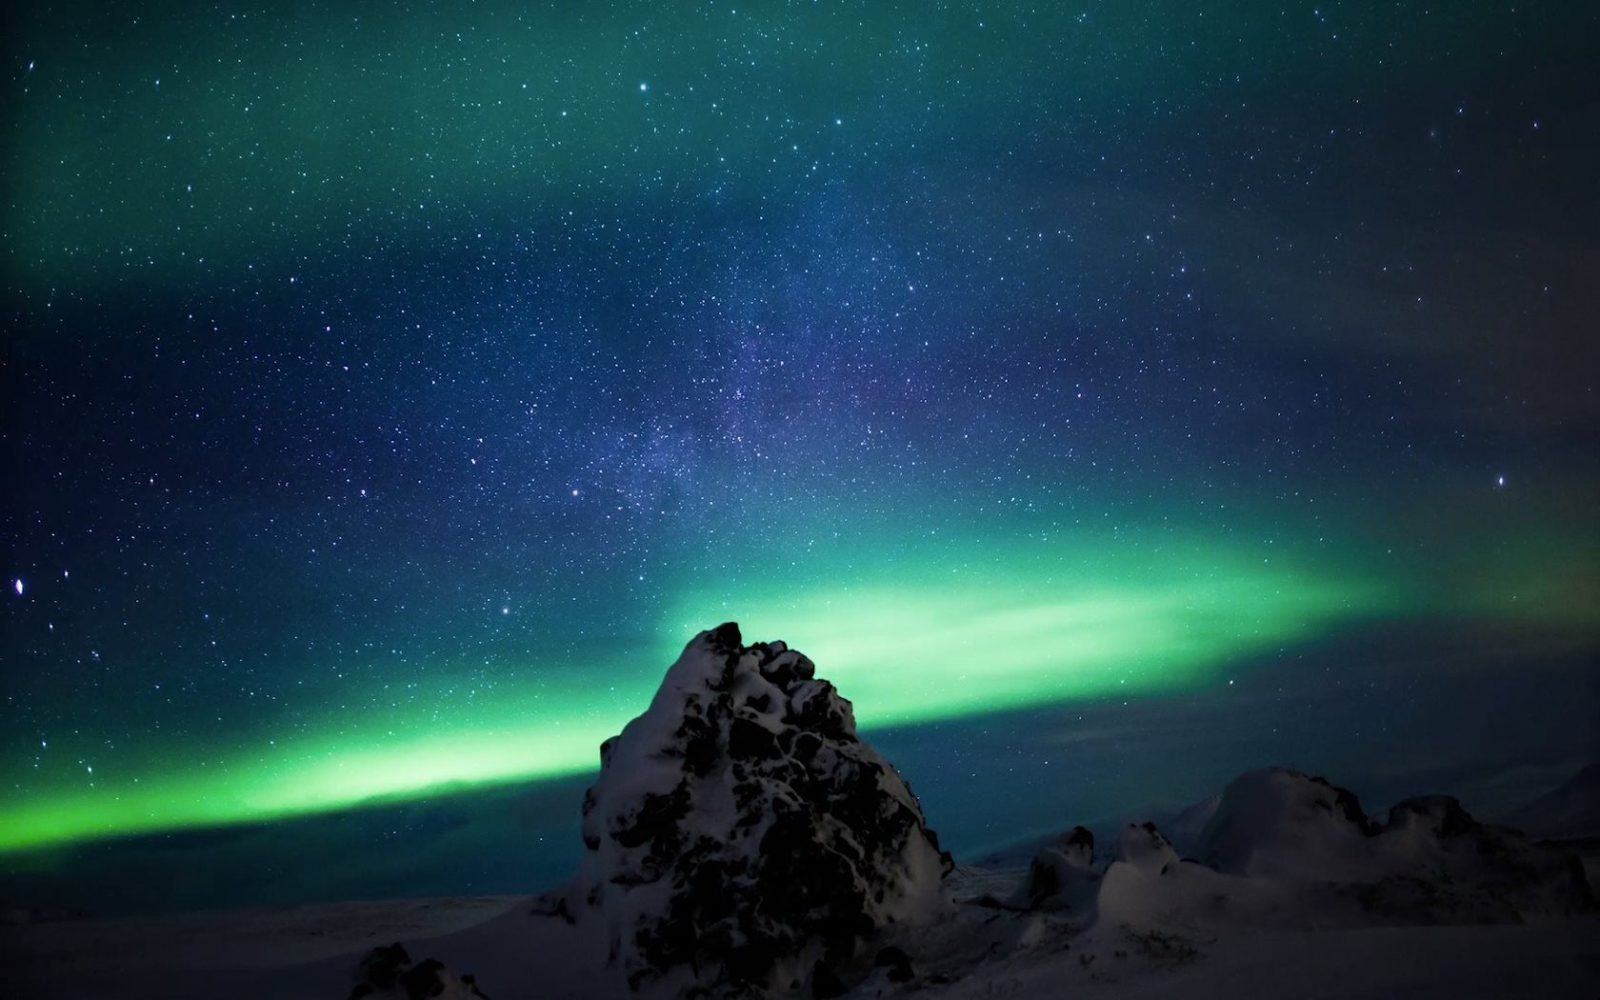 You can´t make a film about Iceland and not feature the northern lights.